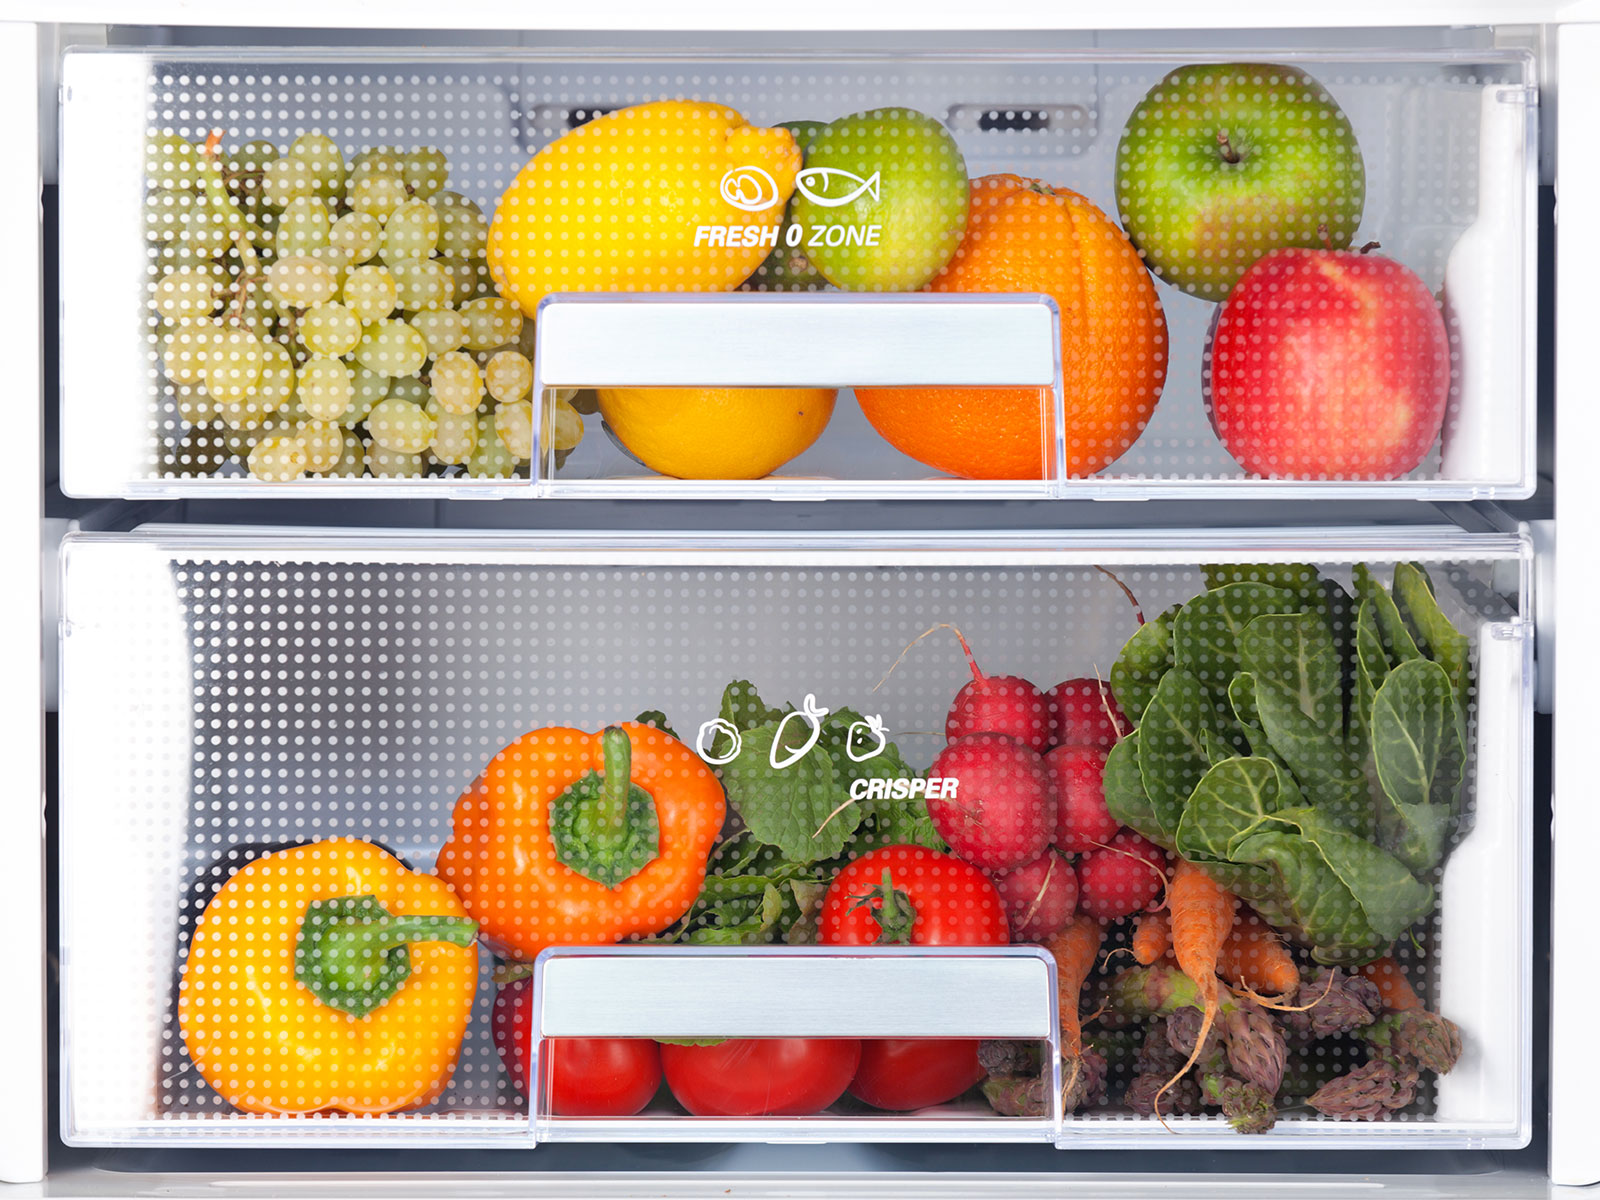 fridge with fruit